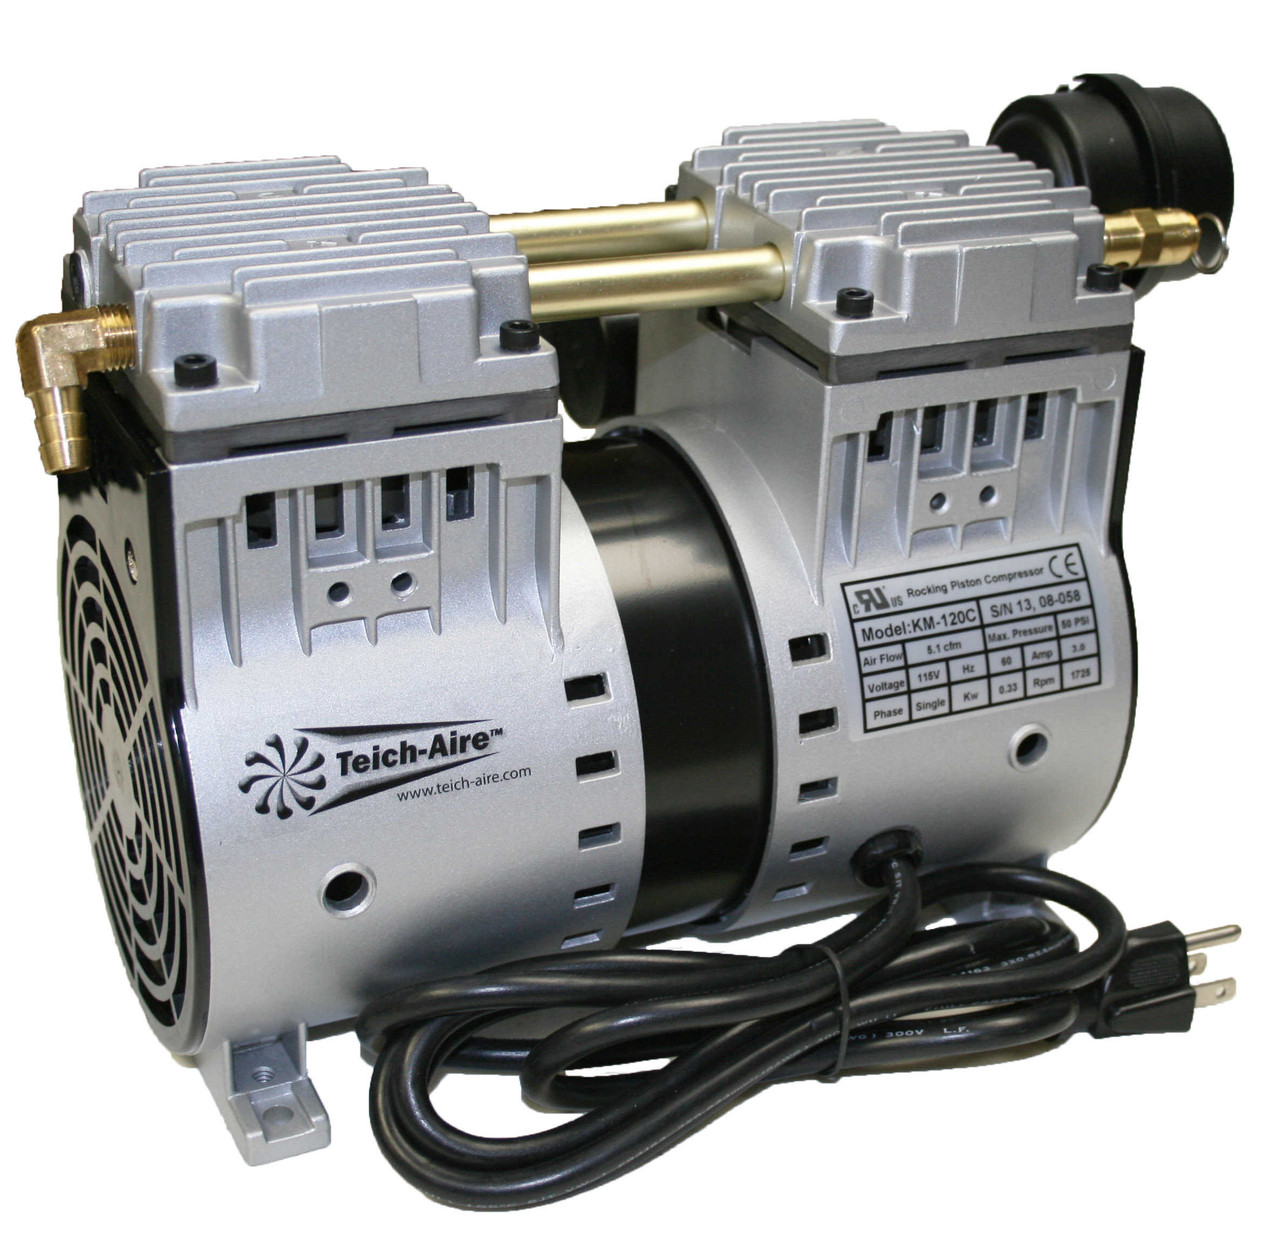 KM-120 1/2HP Air Compressor